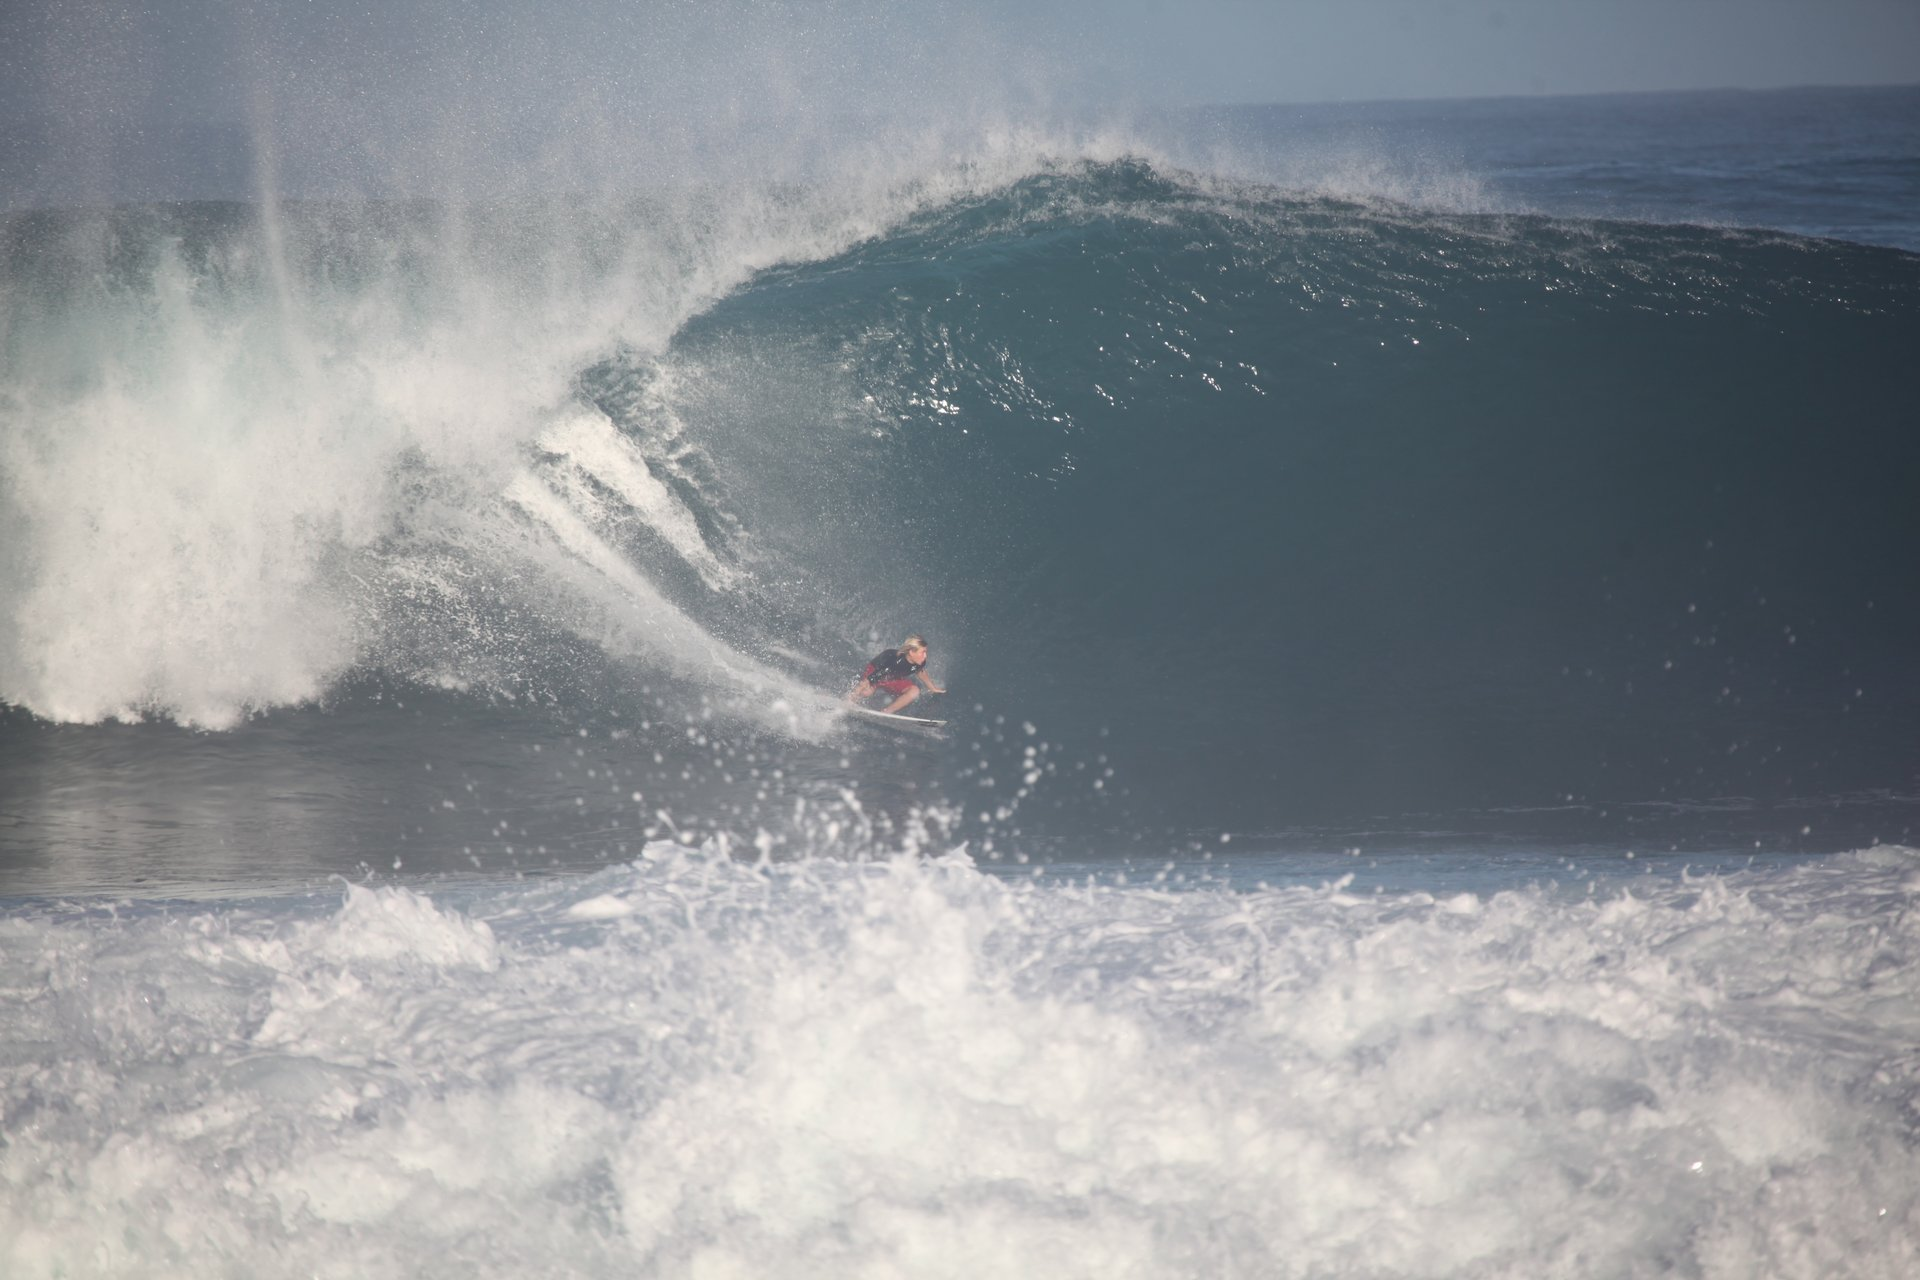 urbs@sea's photo of Pipeline & Backdoor